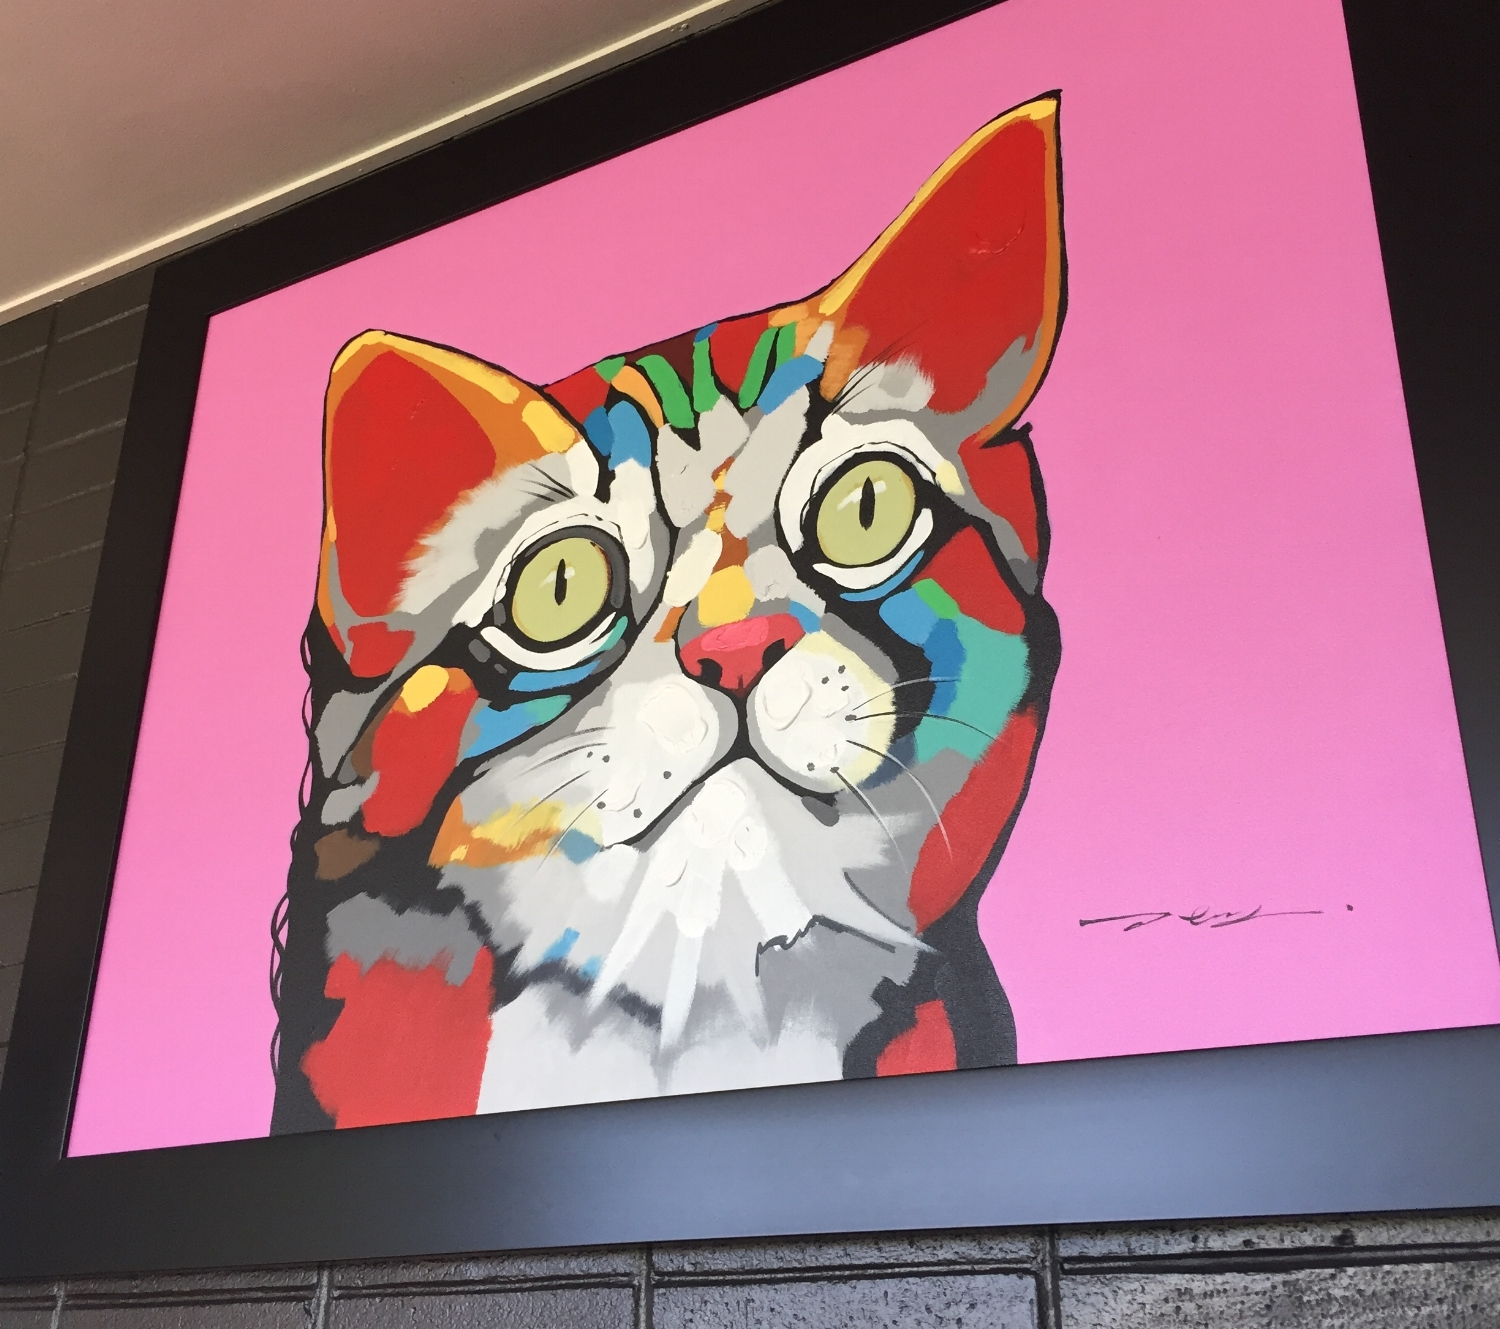 Framed painting of a cat in bright colors and a pink background.